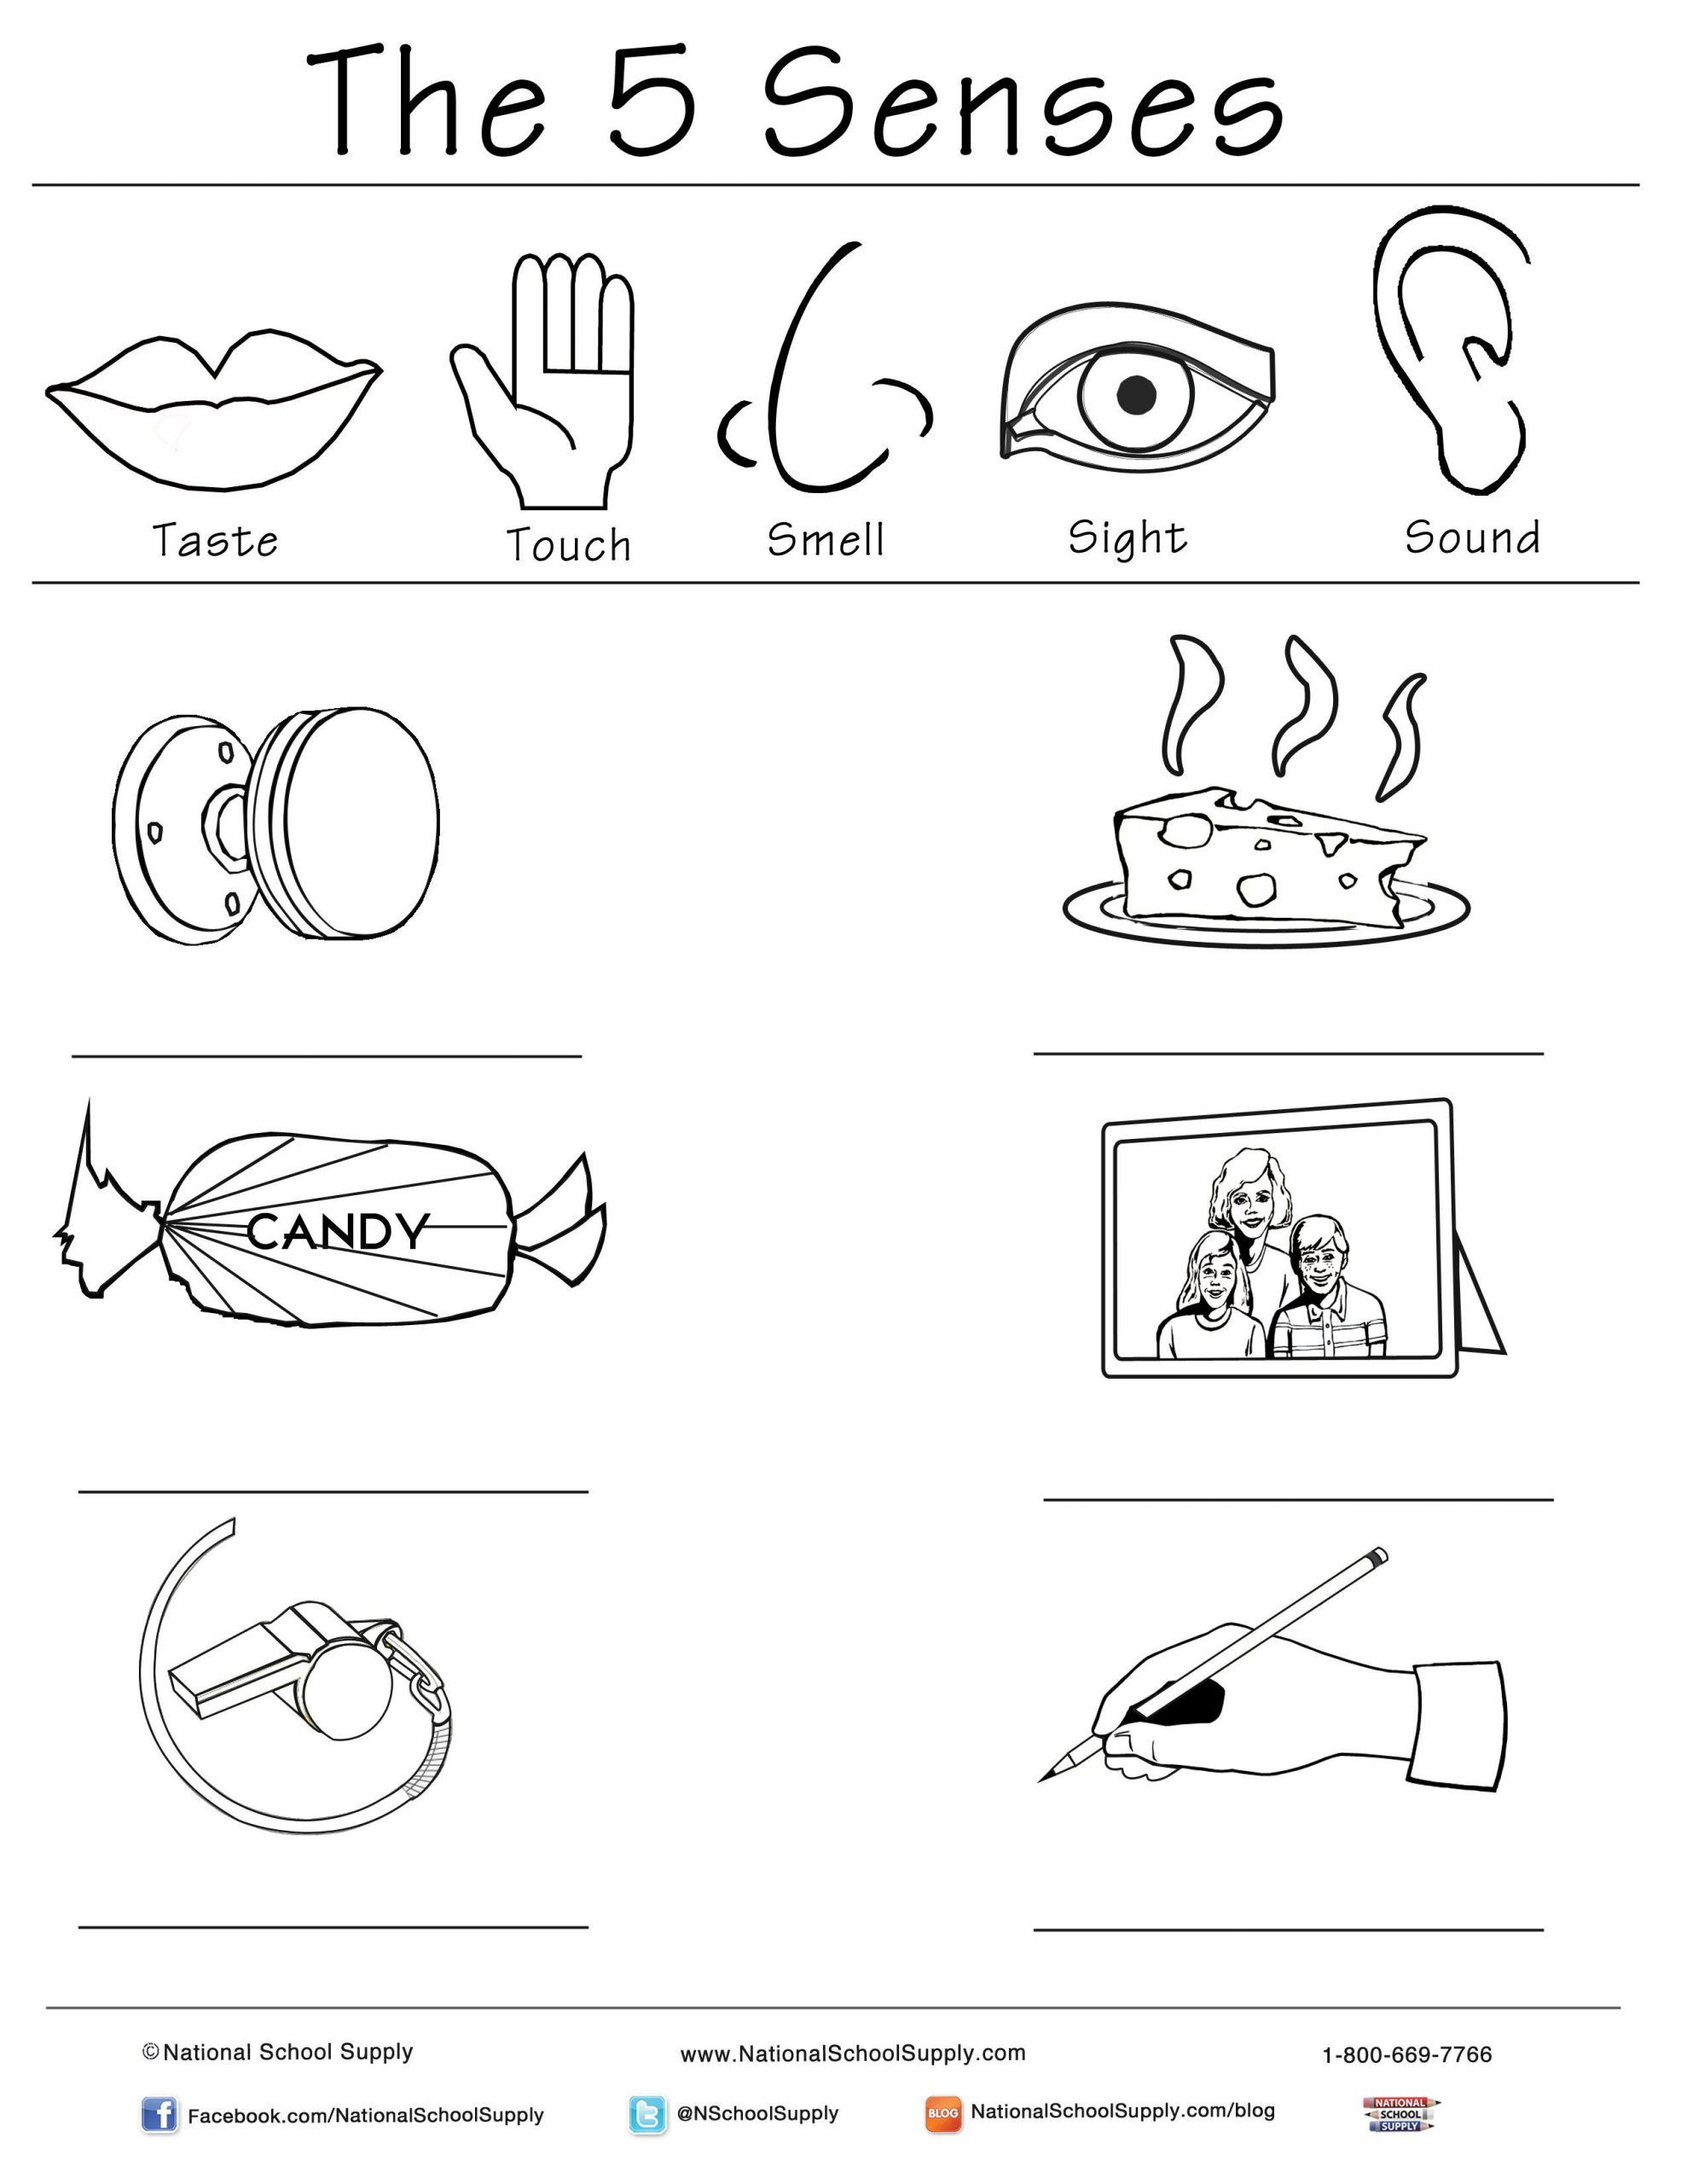 5 Senses Printable Worksheets New 5 Senses Printable is Great for Classrooms Of All Ages